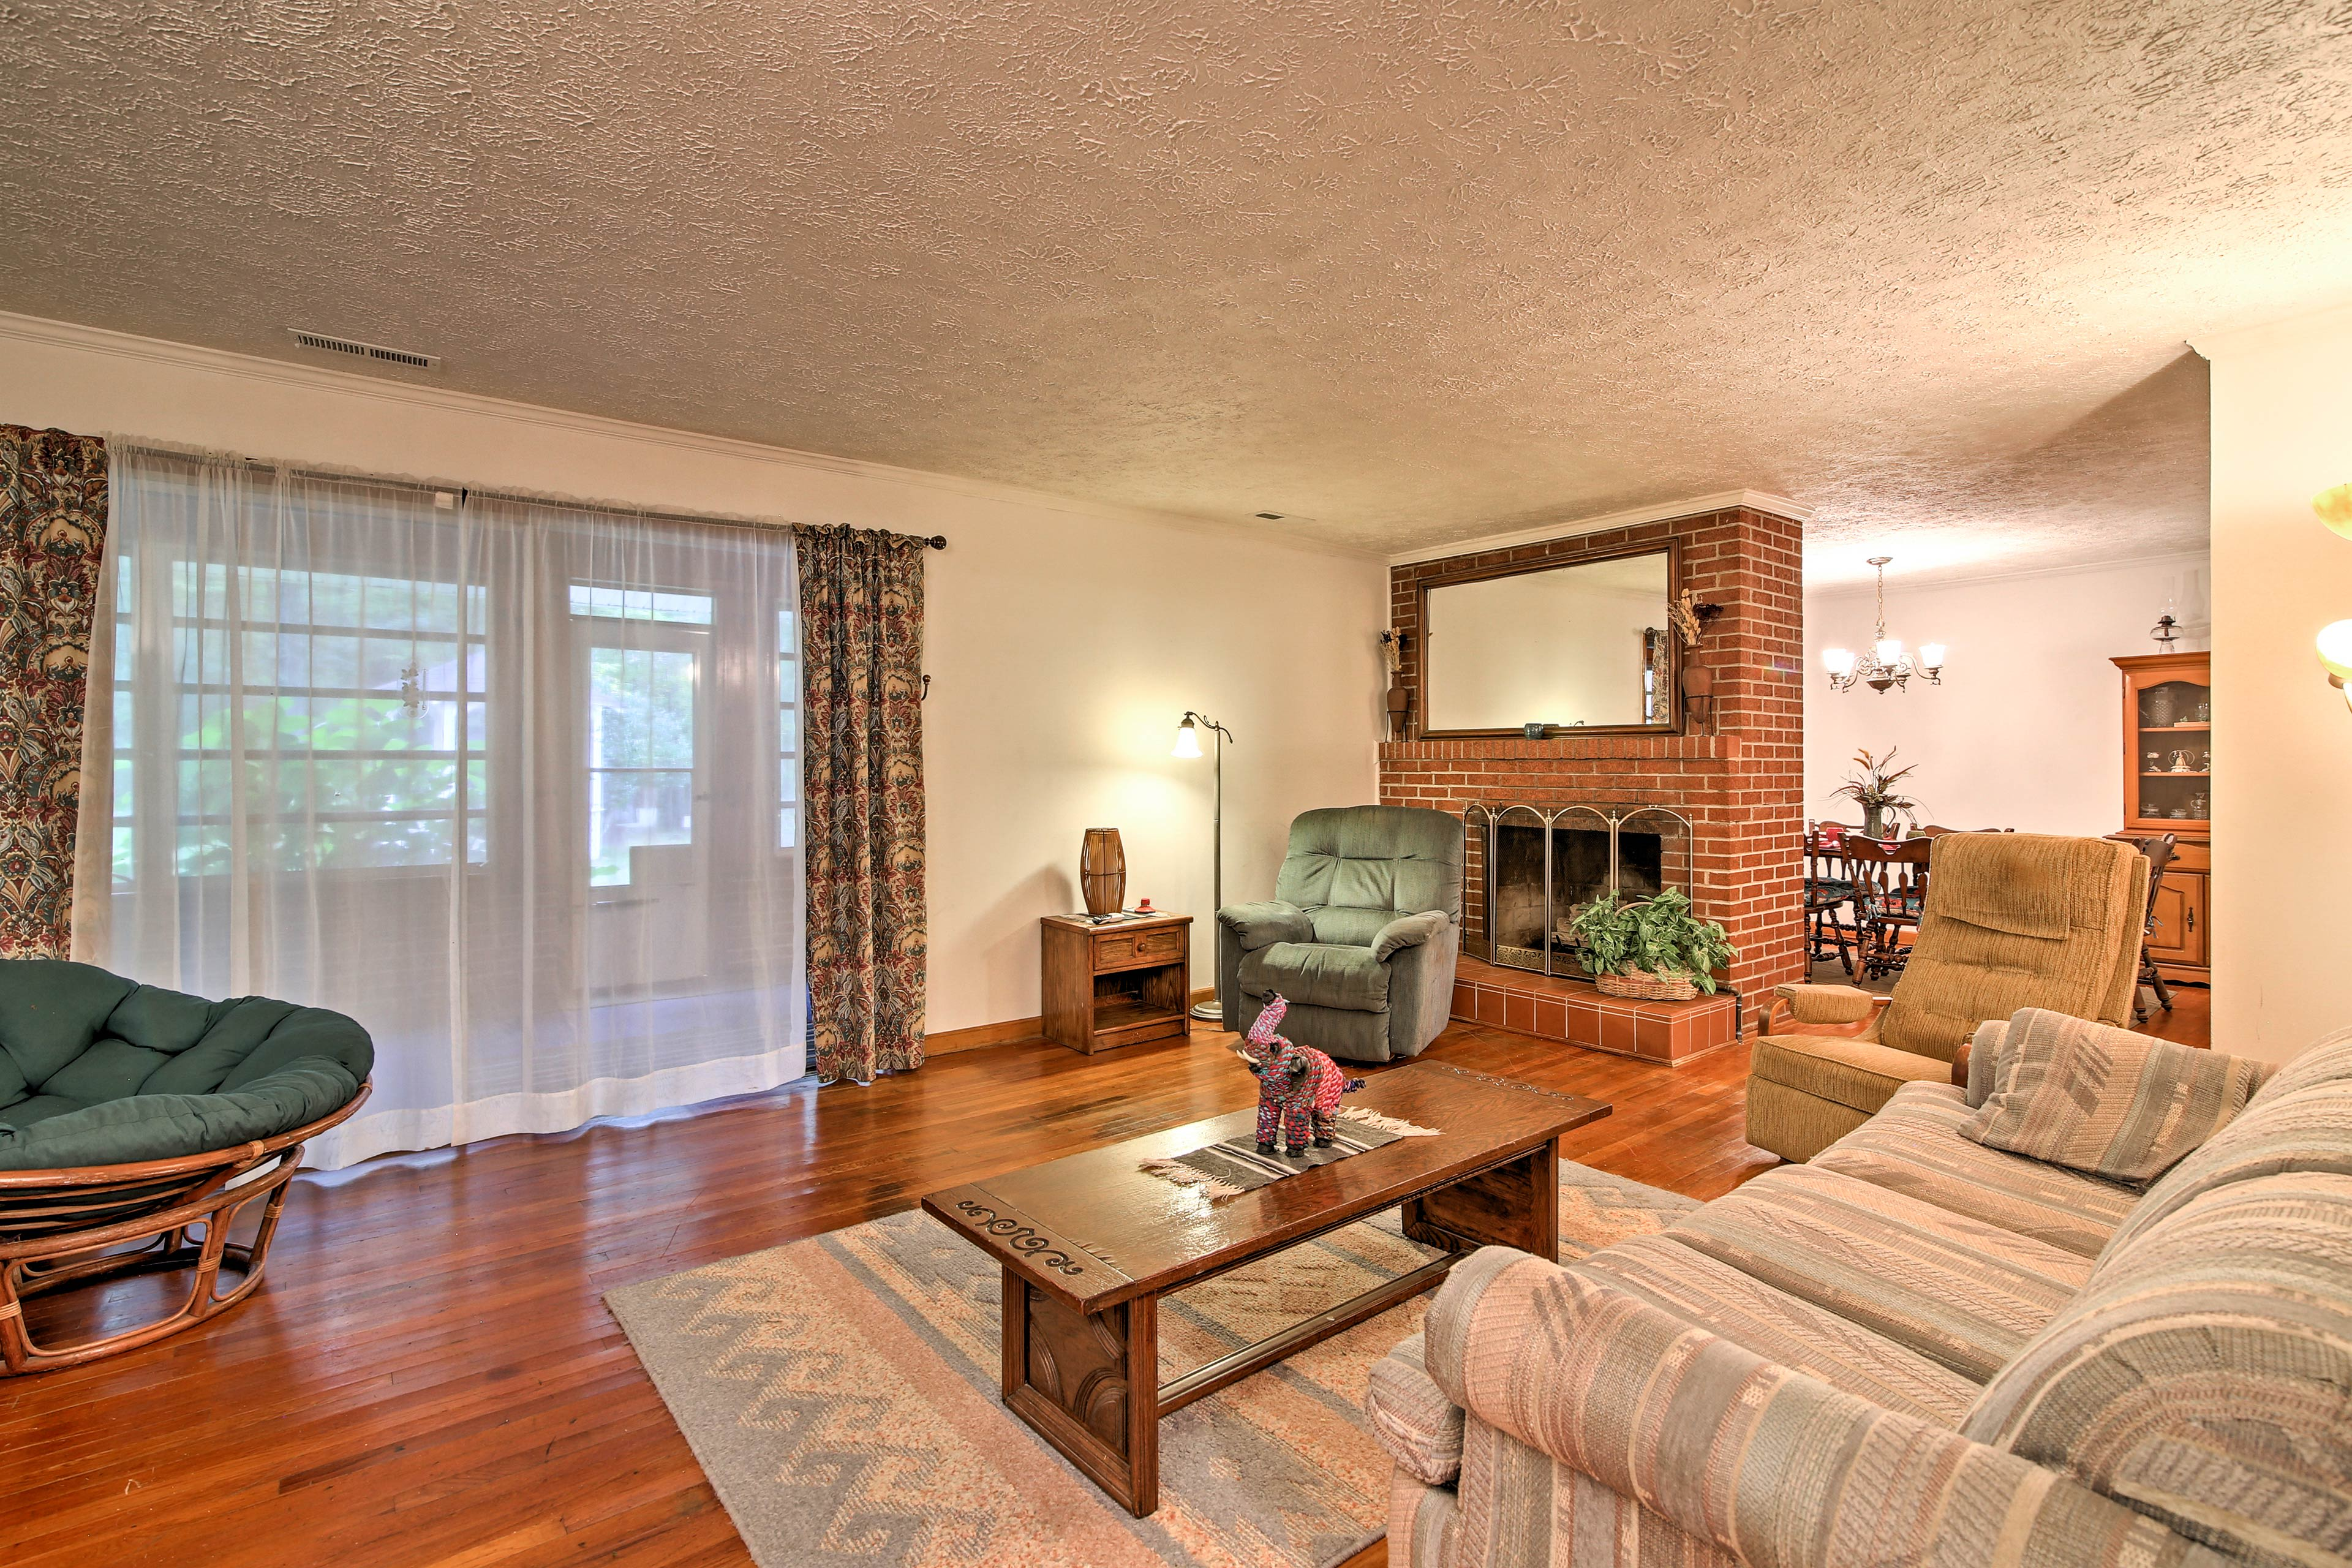 A second living area boasts gleaming hardwood floors and opens to the sunporch.